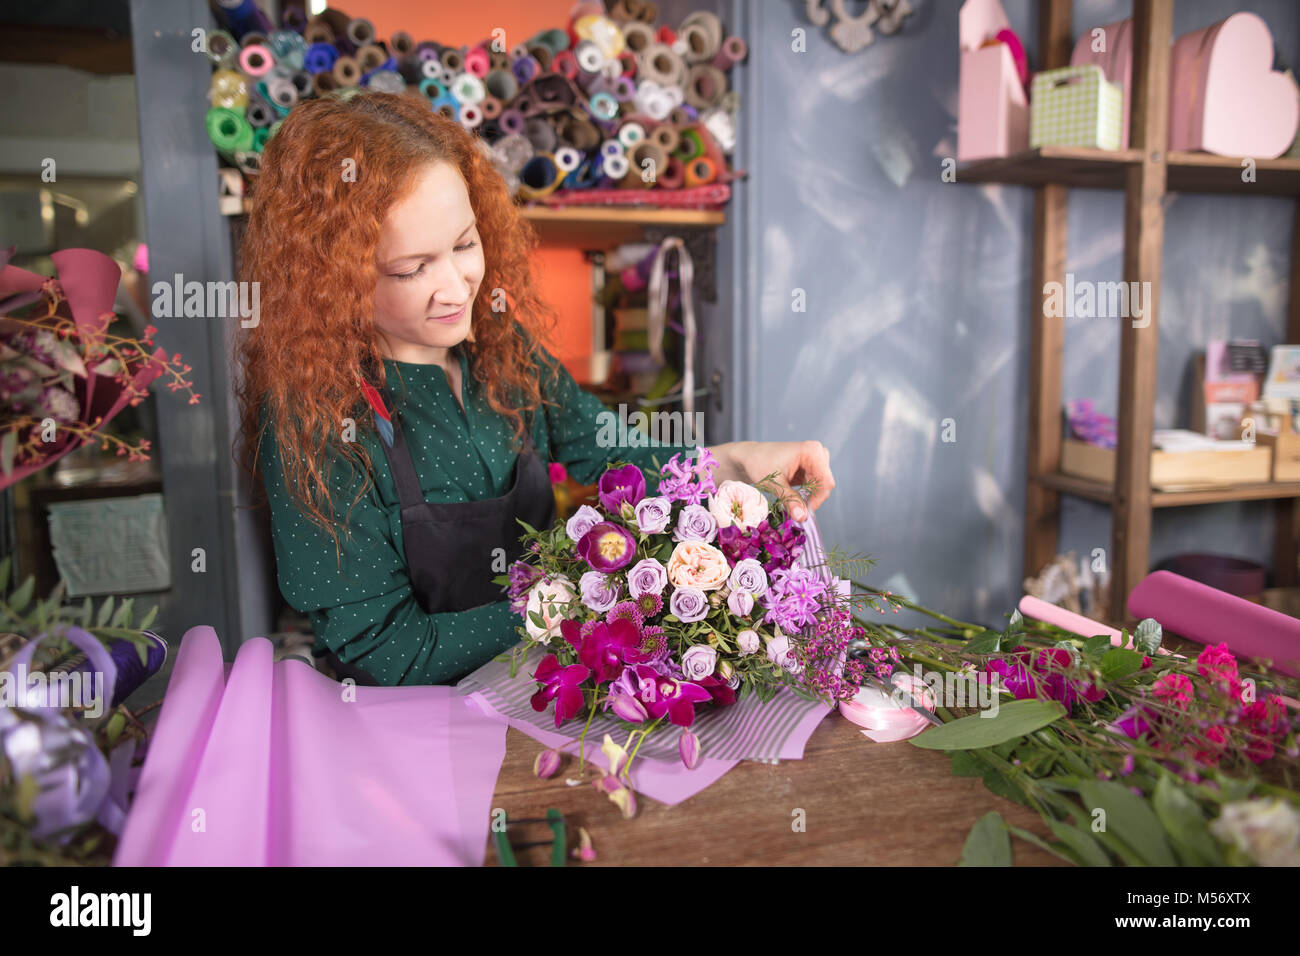 busy working hours of florist job - Stock Image